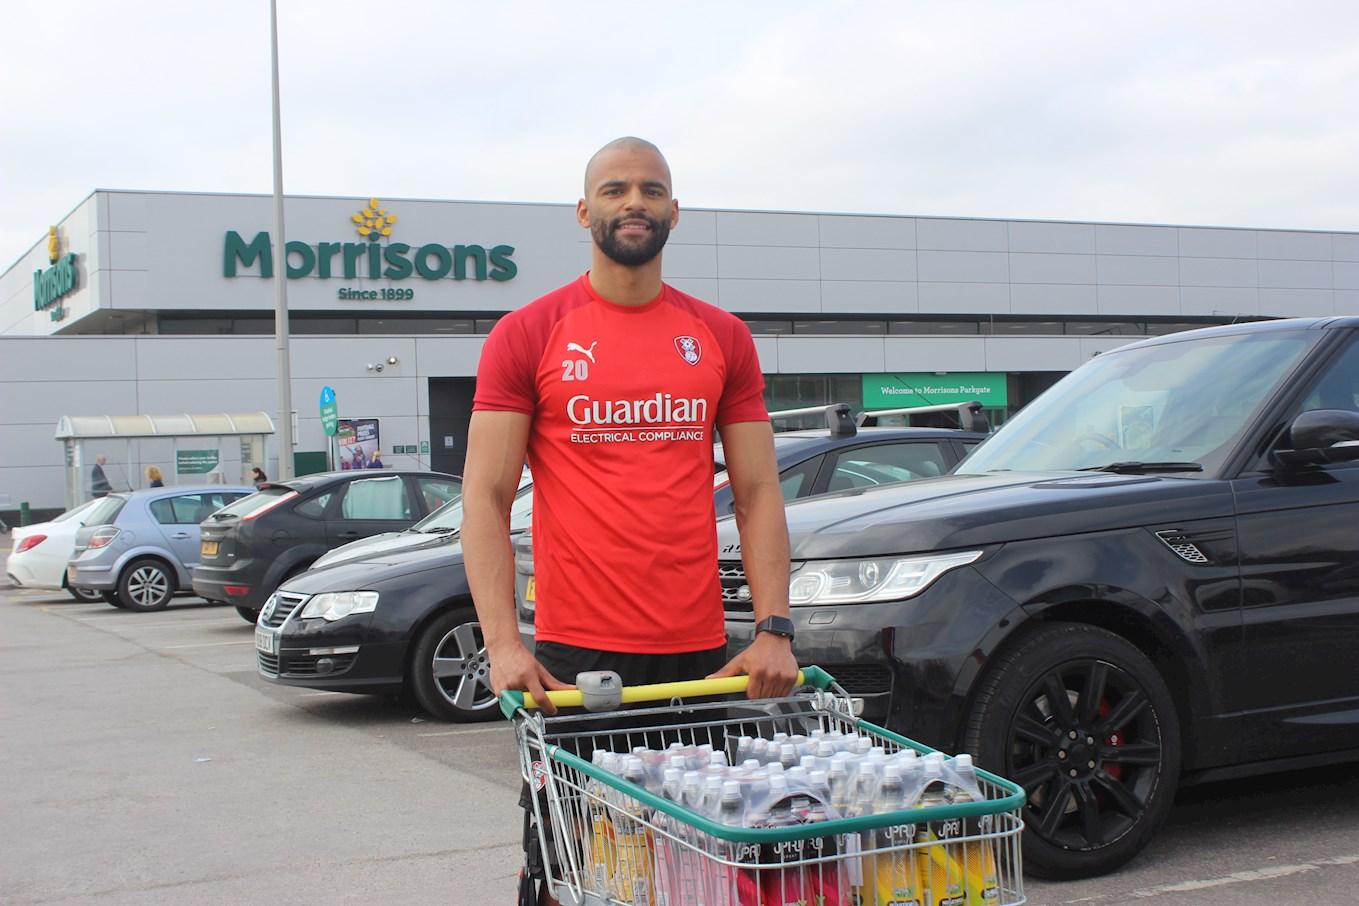 PTSG company, Guardian, continues long-standing sponsorship of Rotherham Utd